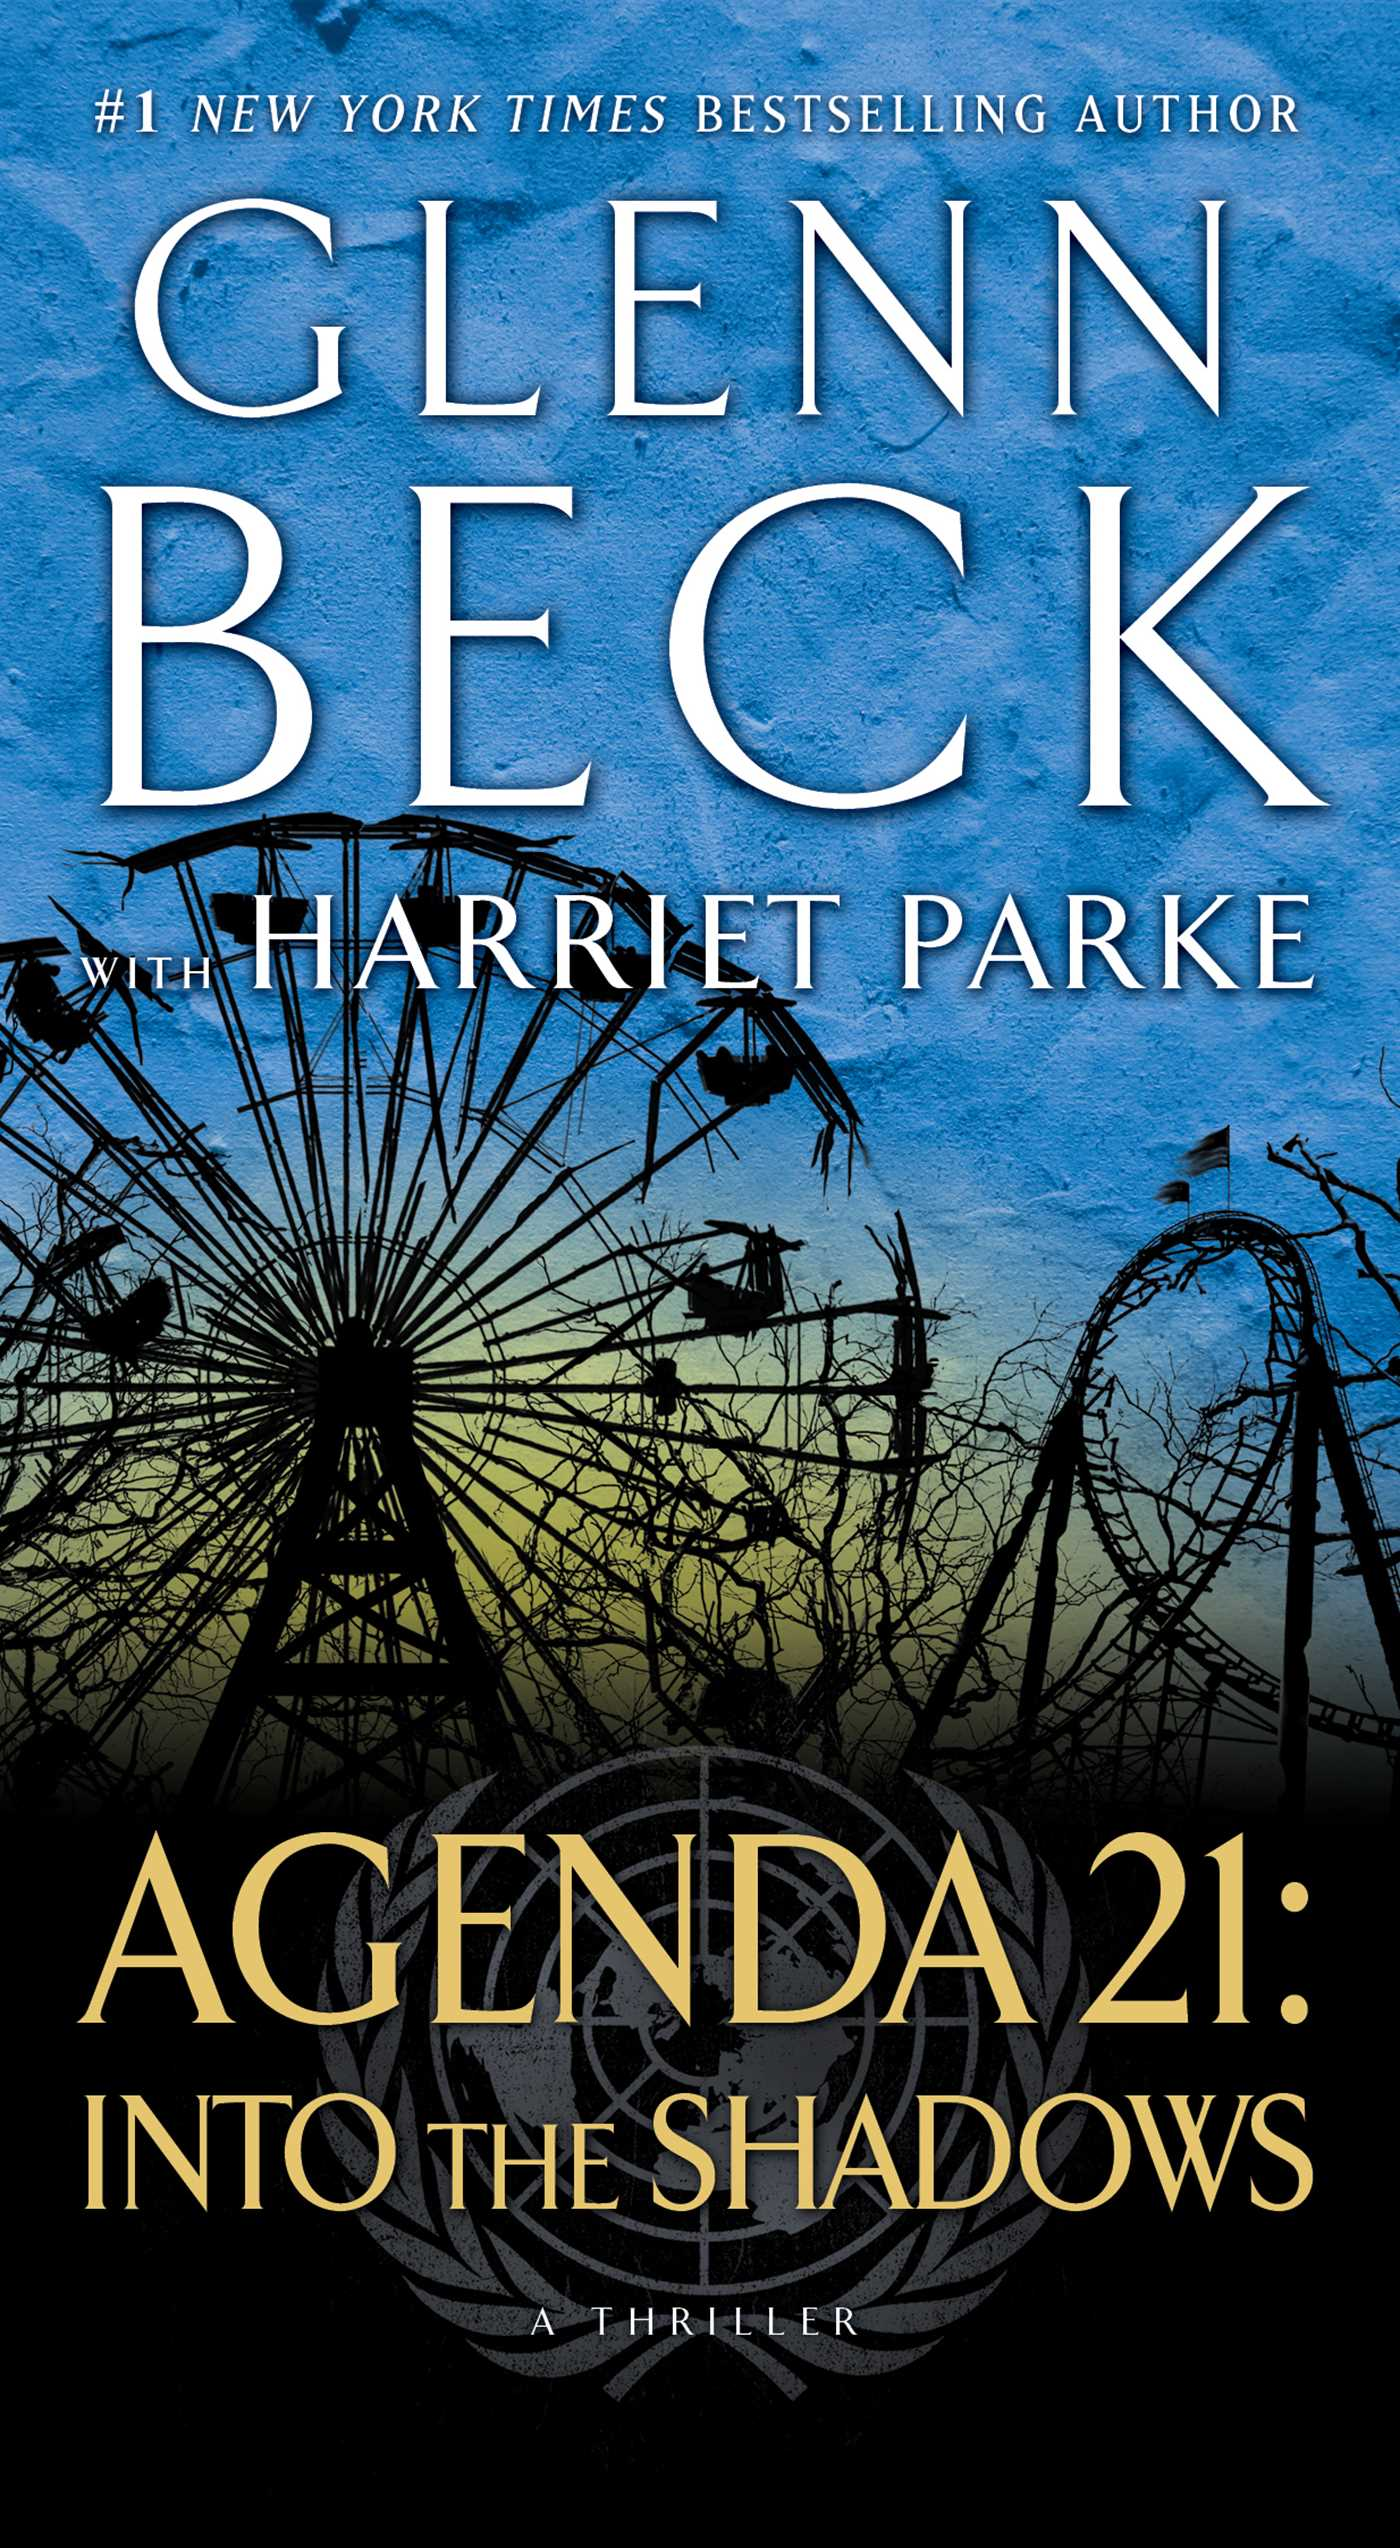 Agenda-21-into-the-shadows-9781476746852_hr